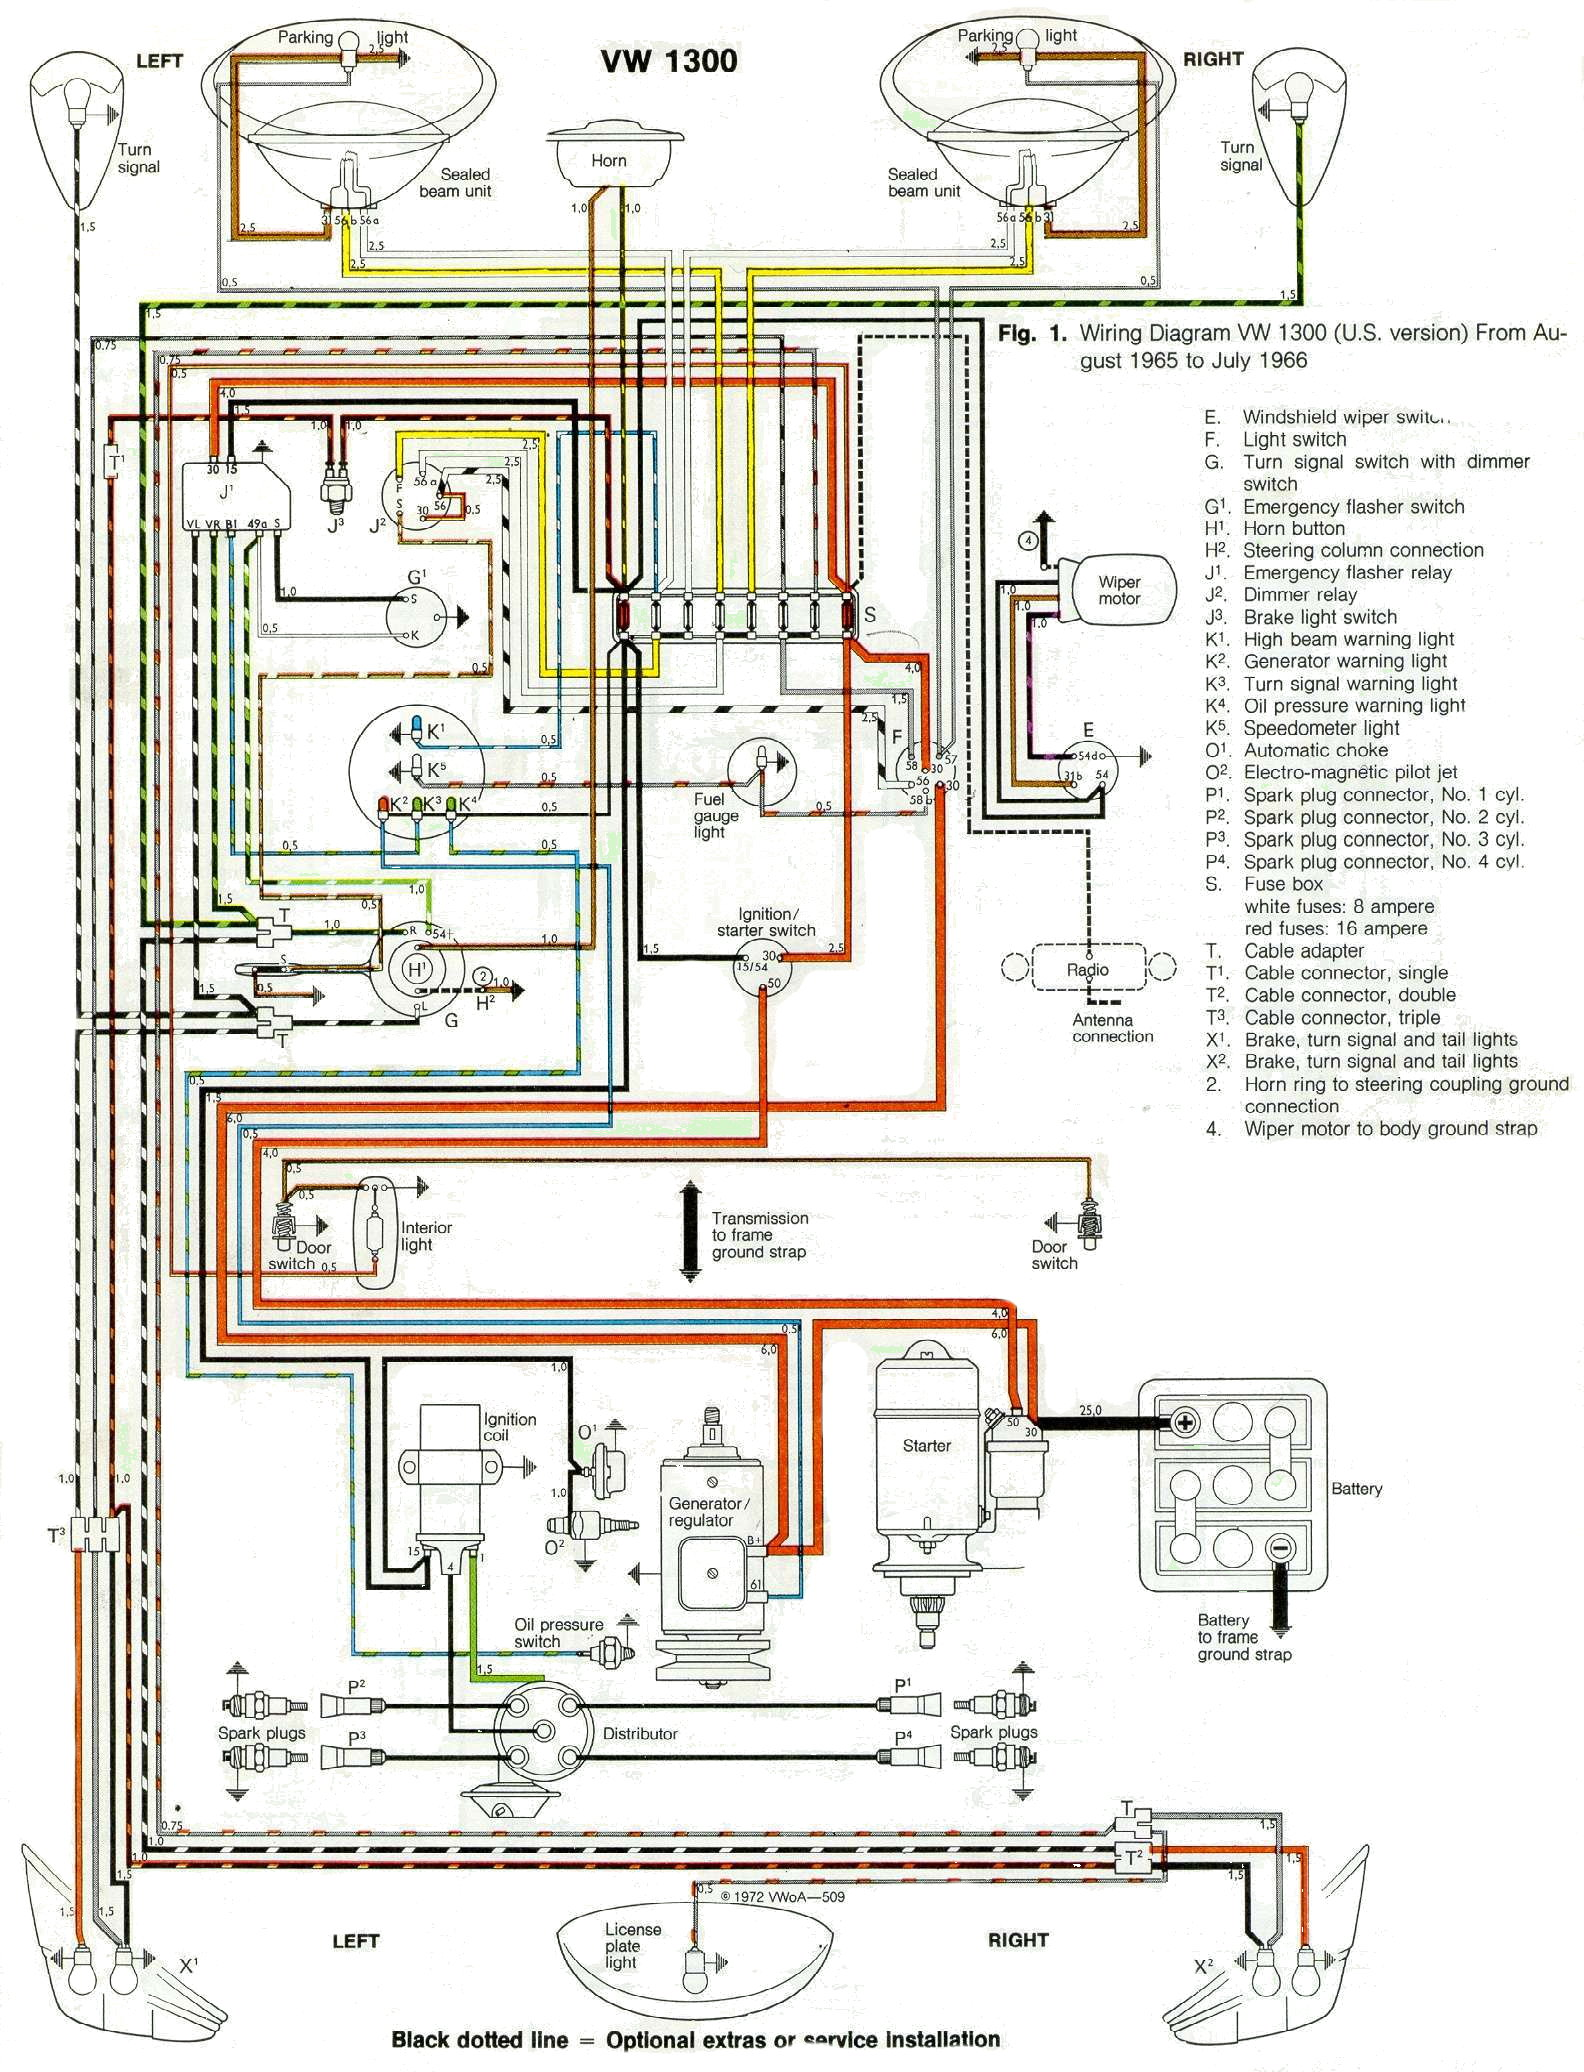 1966 Wiring 67 vw bus wiring harness 71 vw wiring harness \u2022 wiring diagrams 1965 VW Beetle Wiring Diagram at soozxer.org